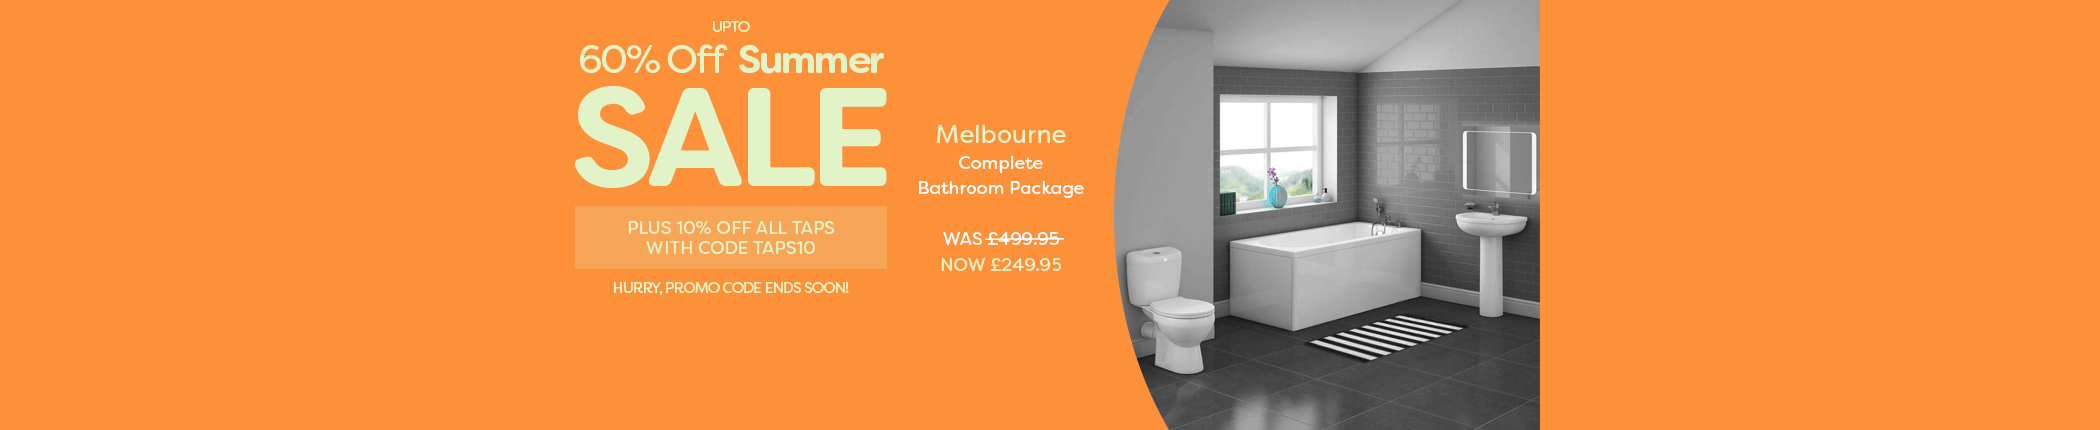 summer-sale-10off-taps-melbourne-complete-bathroom-package-countdown-july17-hbnr